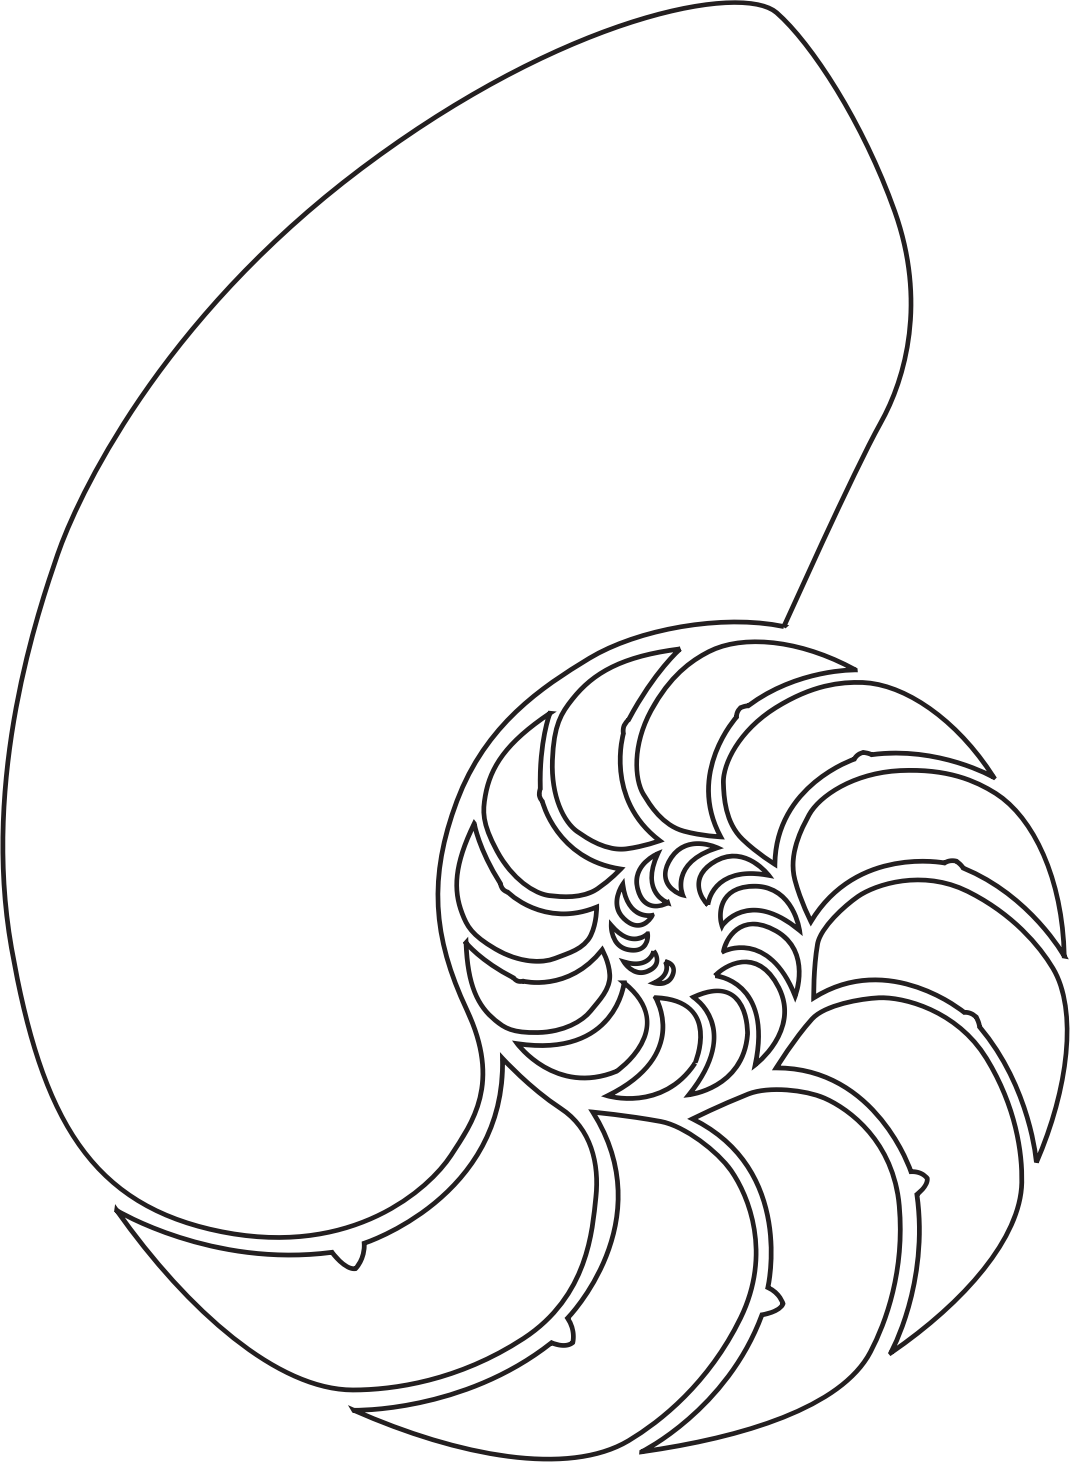 Drawing shell spiral. Nautilus by i dllc